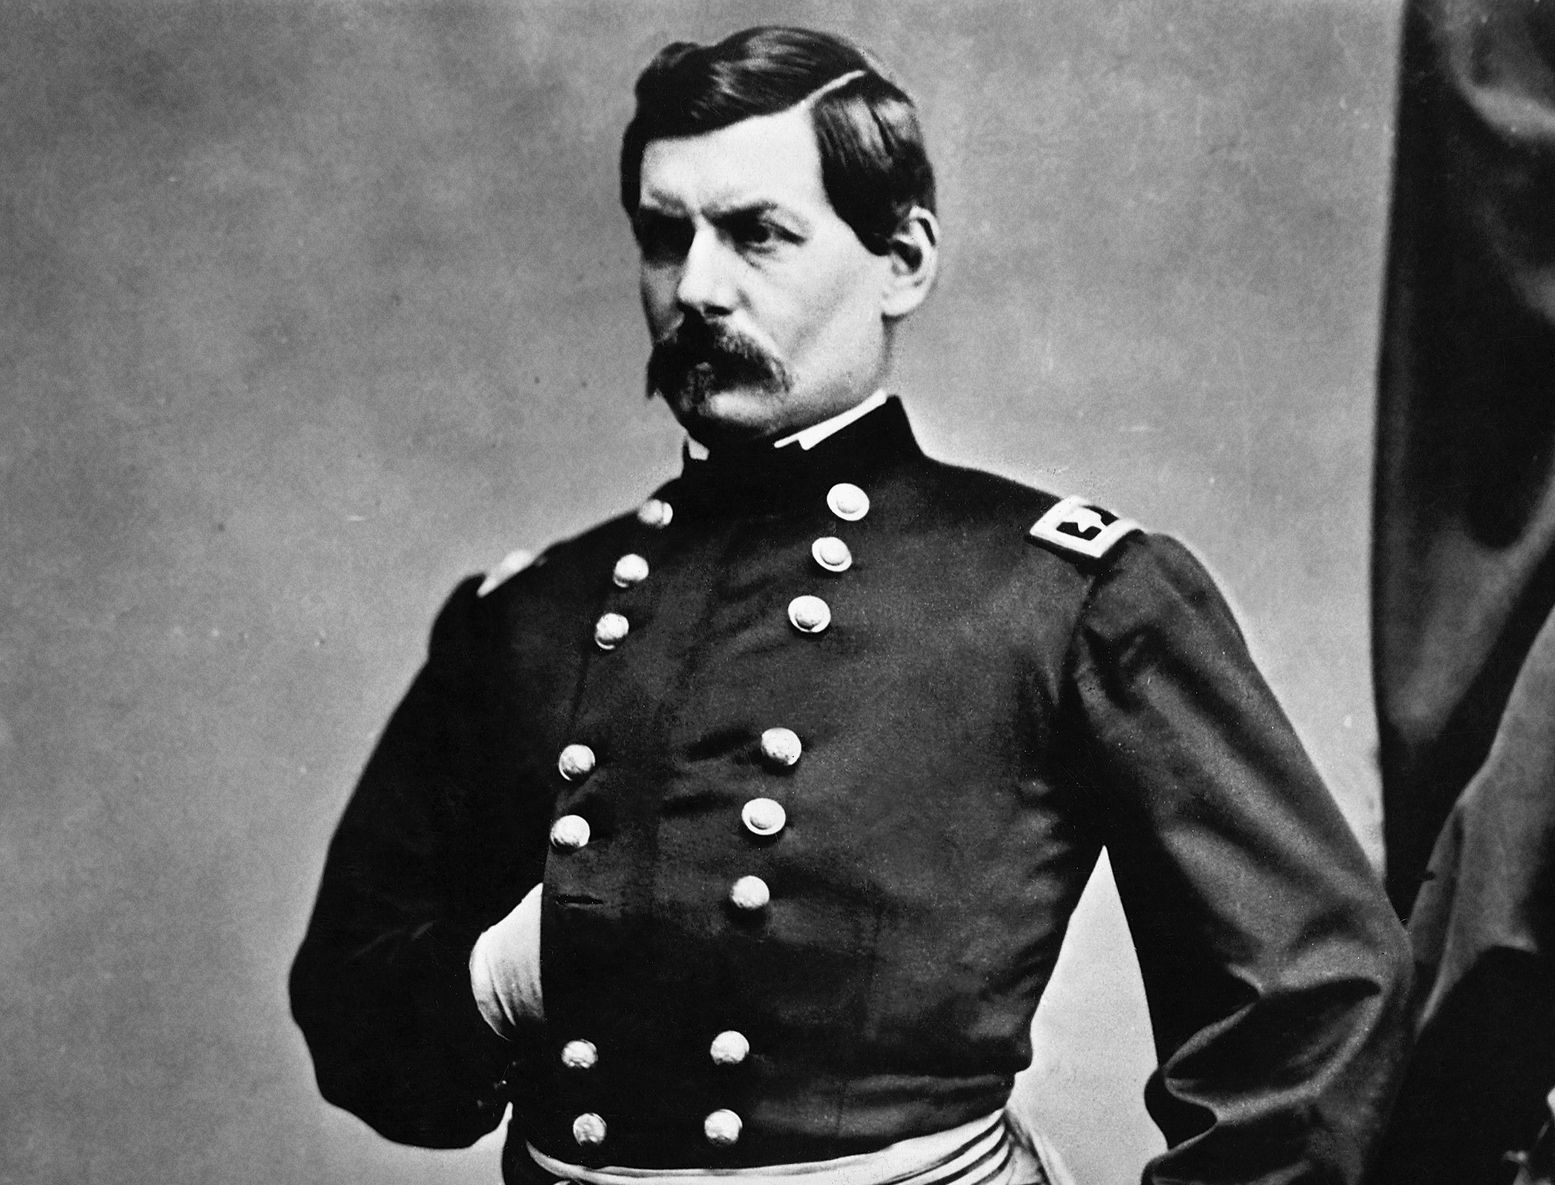 Union Civil War general and husband of Clara Pope